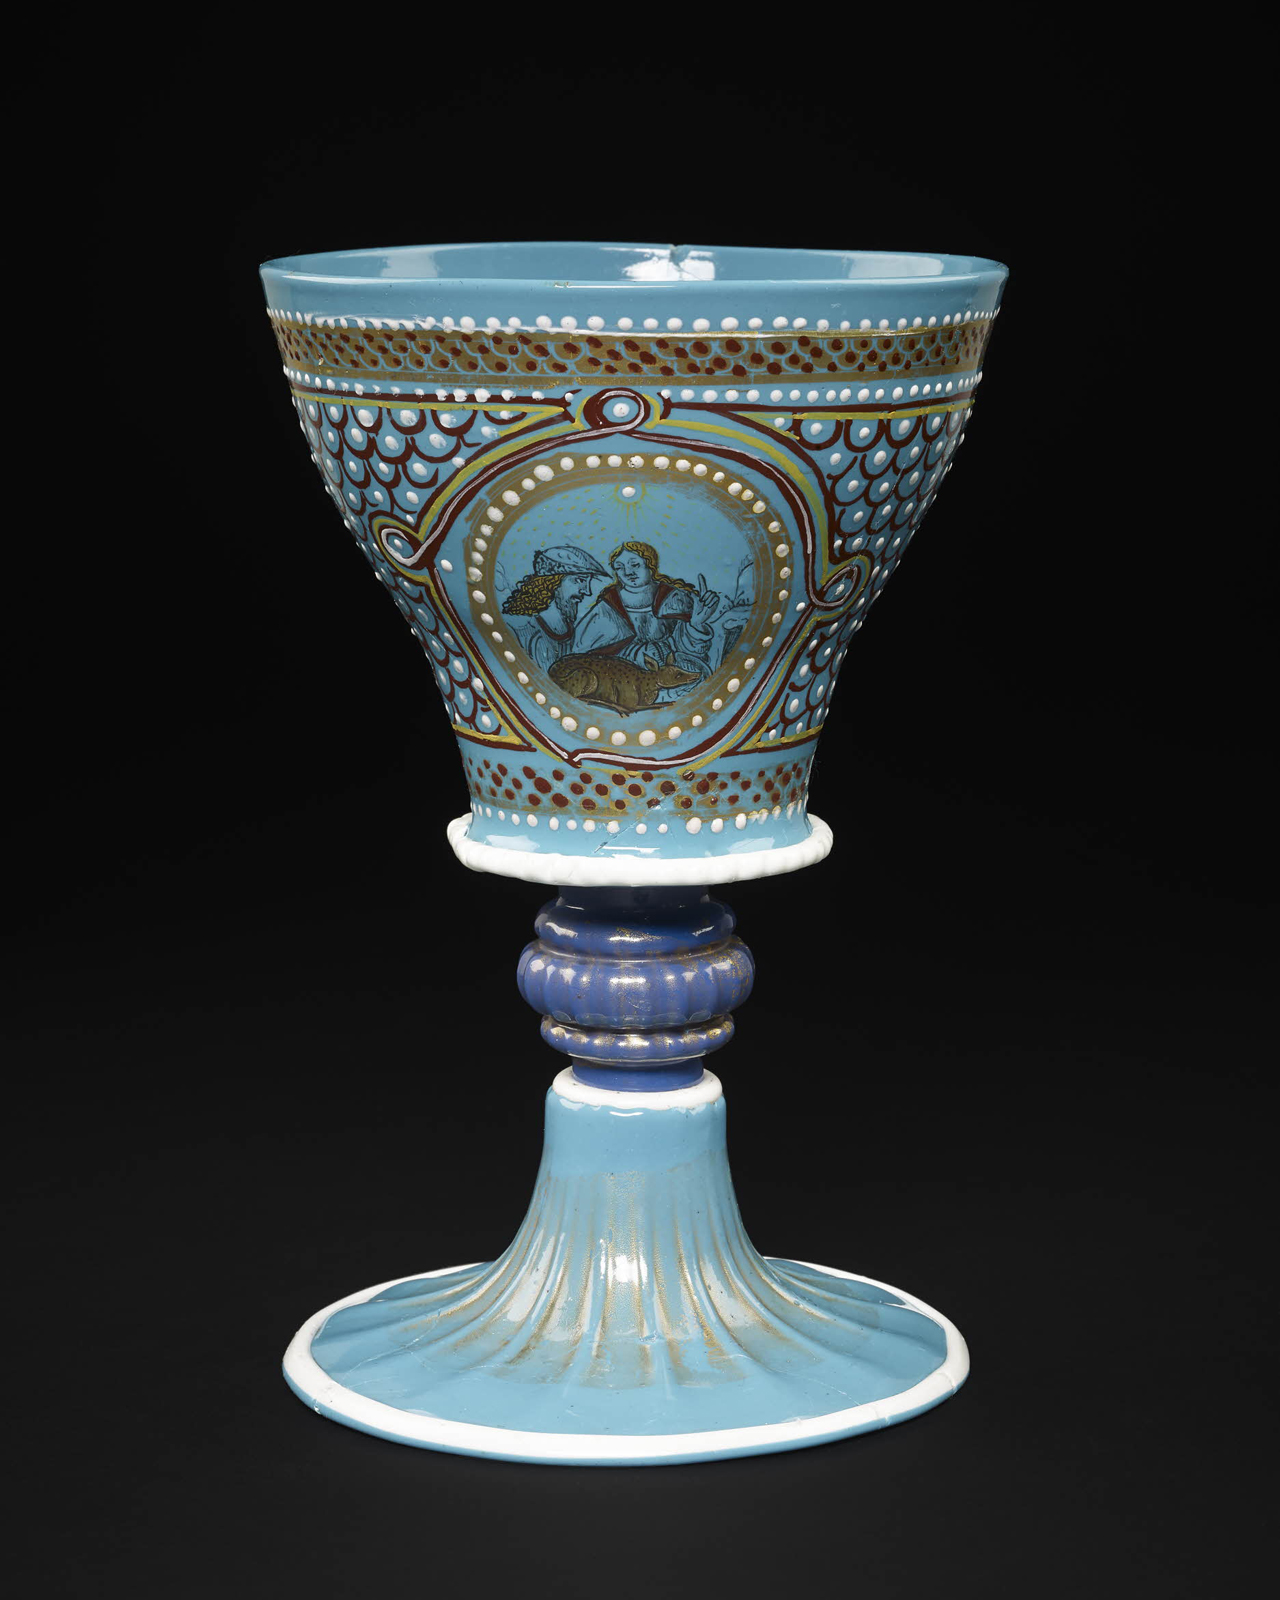 FIG. 44. The Turquoise Goblet. Venice, about 1500. H. 18.9 cm. The British Museum, London (WB.55). Photo: © The Trustees of The British Museum (WB.55AN1537486001).